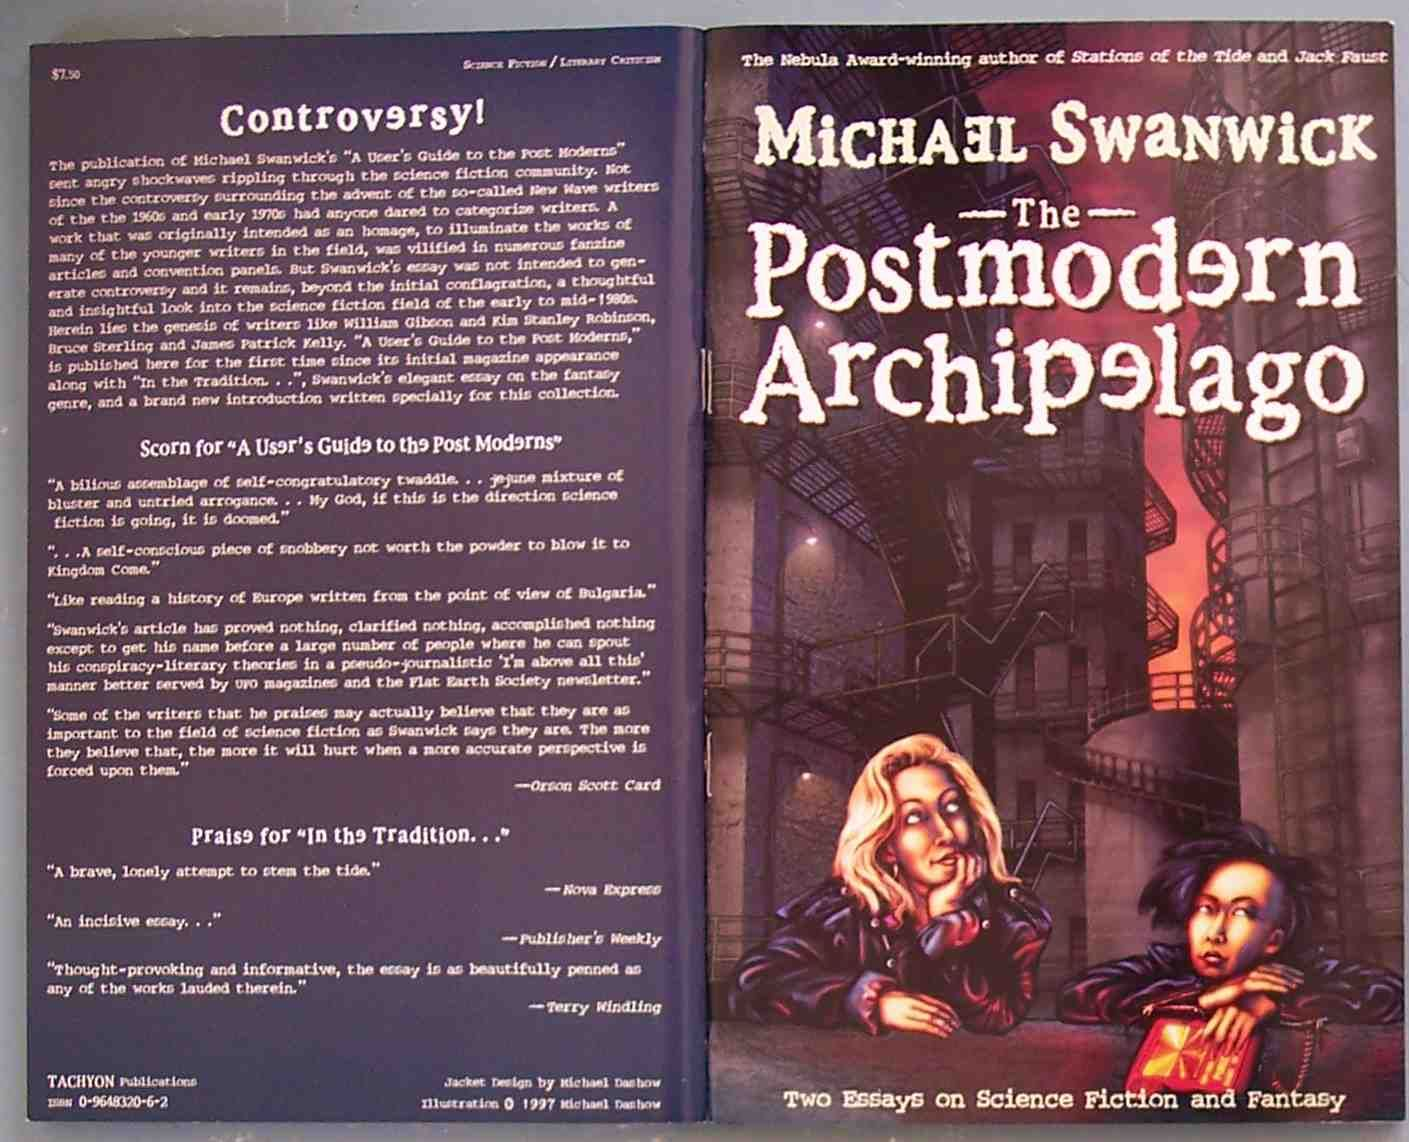 the postmodern archipelago two essays on science    the postmodern archipelago two essays on science fiction   fantasy by michael swanwick